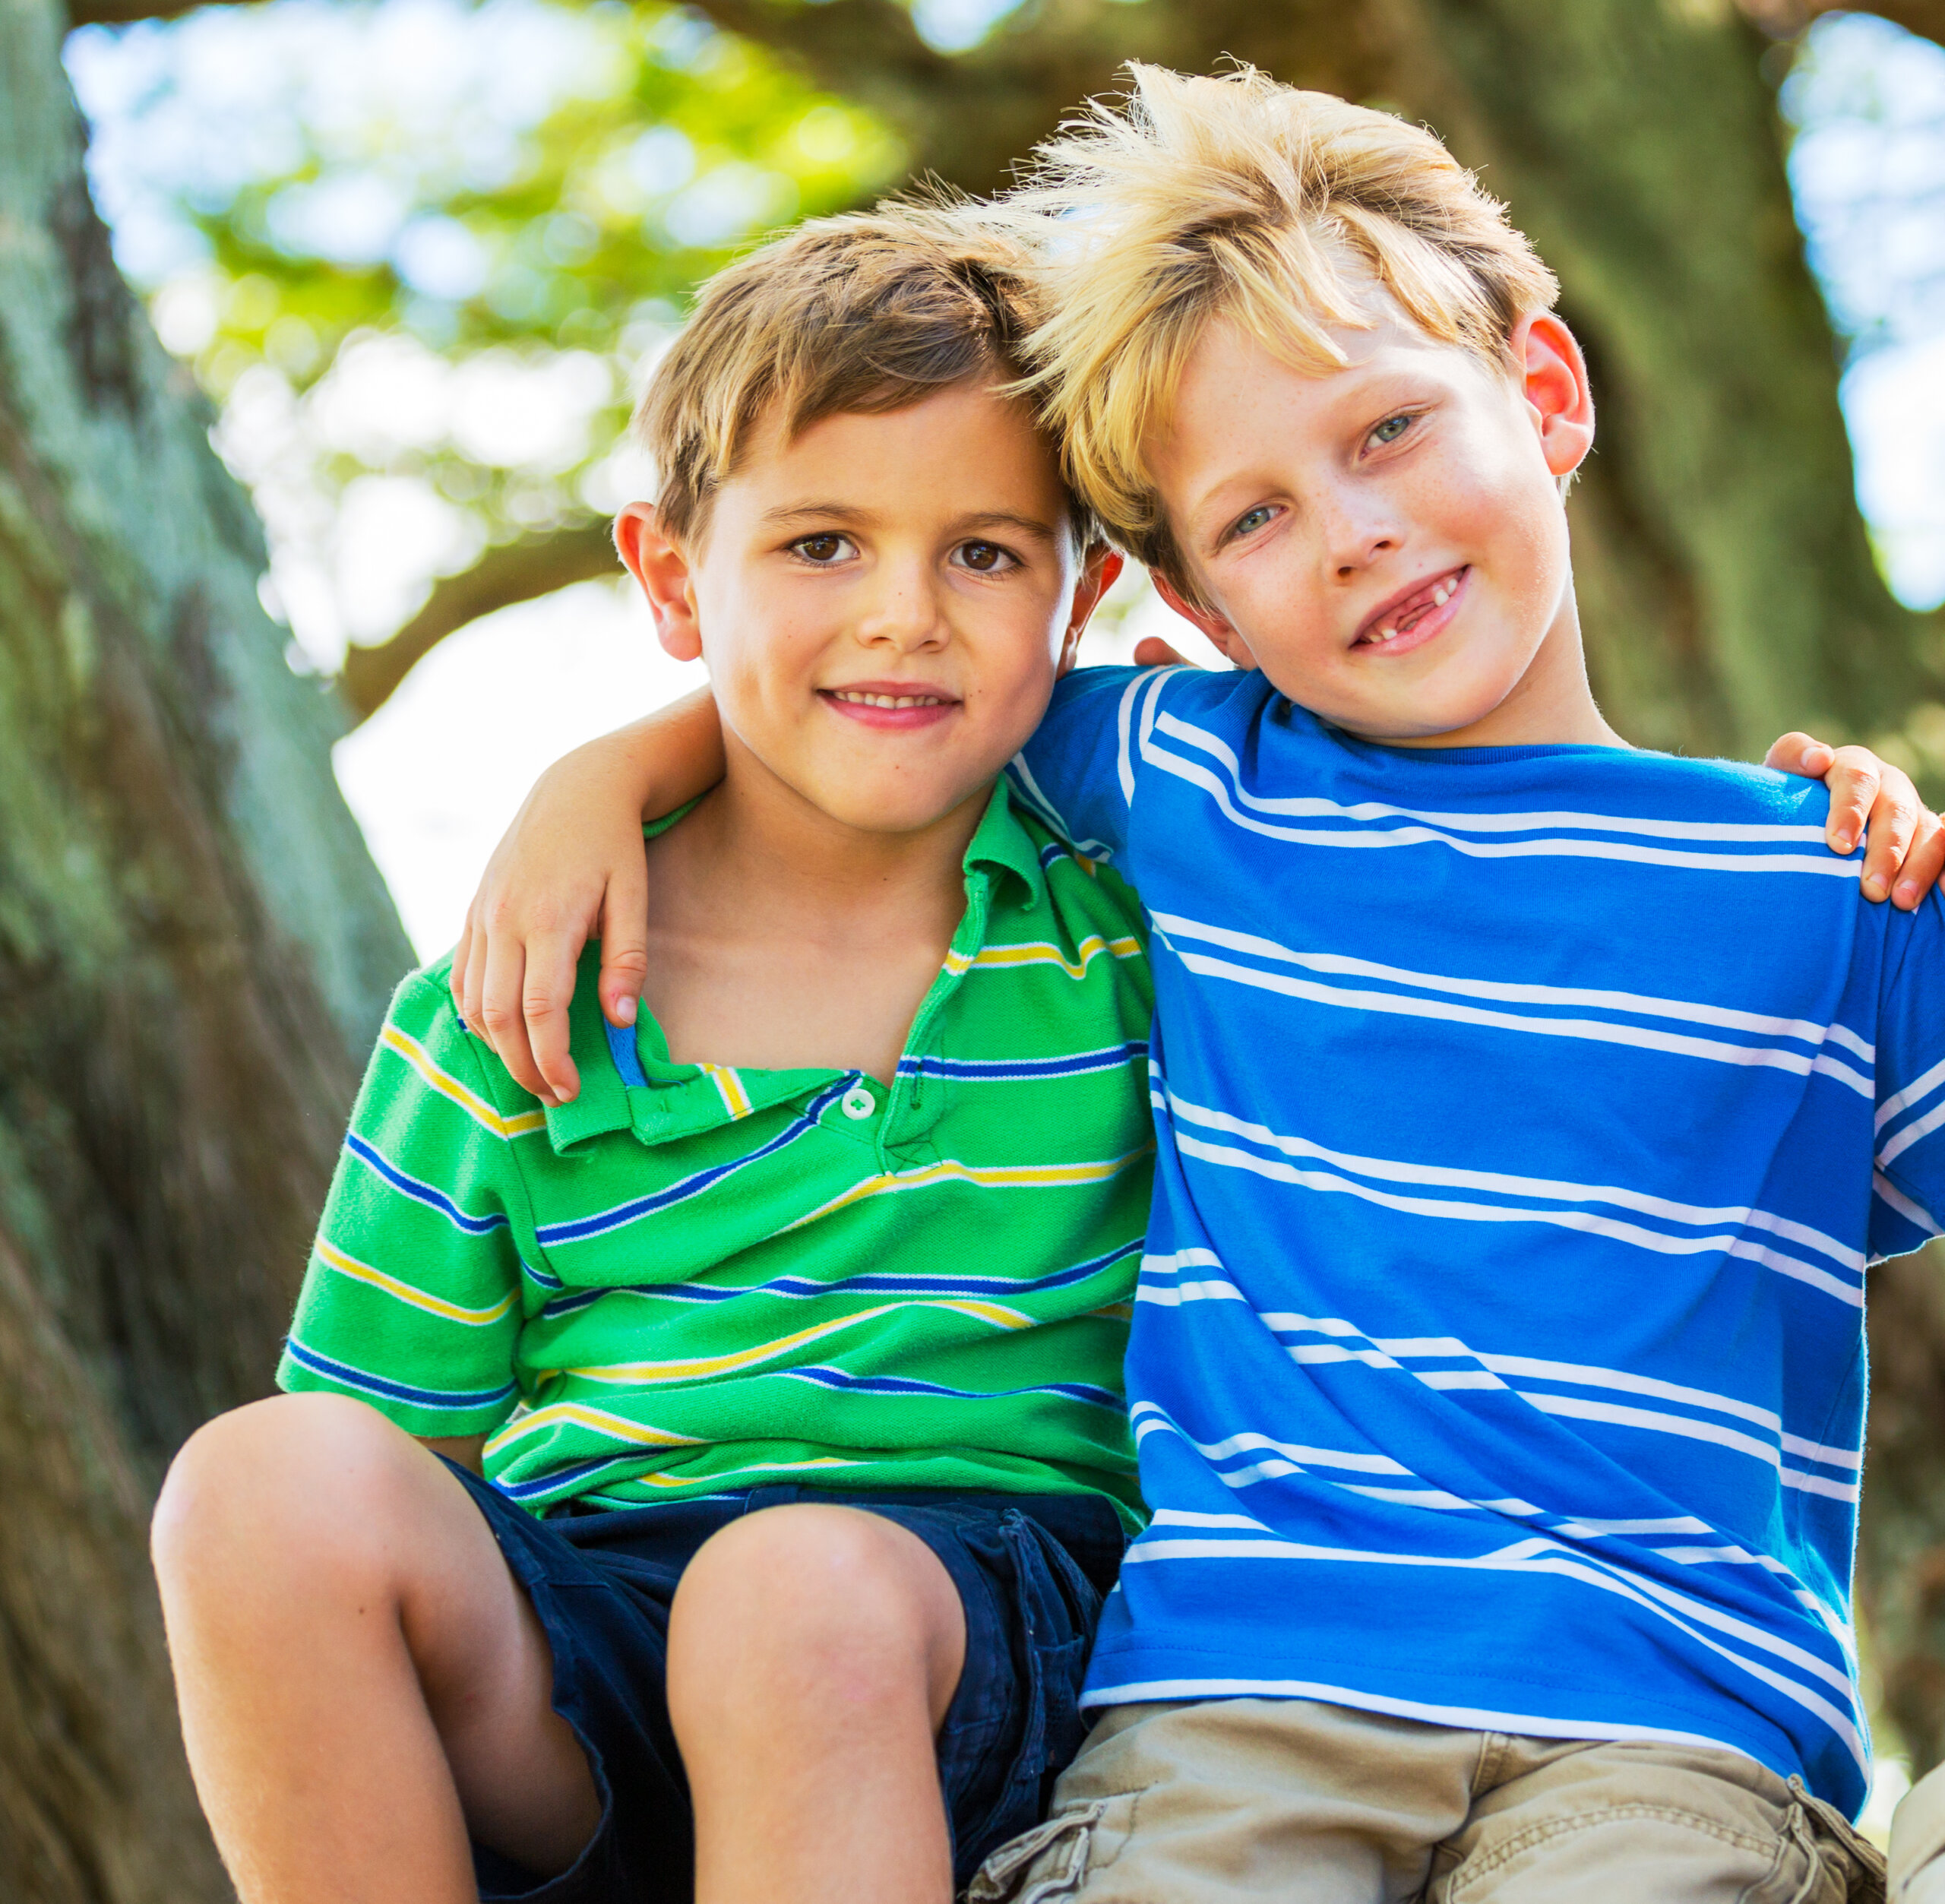 Help your kids decide for themselves who their good, real, true friends are with this friendship checklist to help them deal with friendship issues.